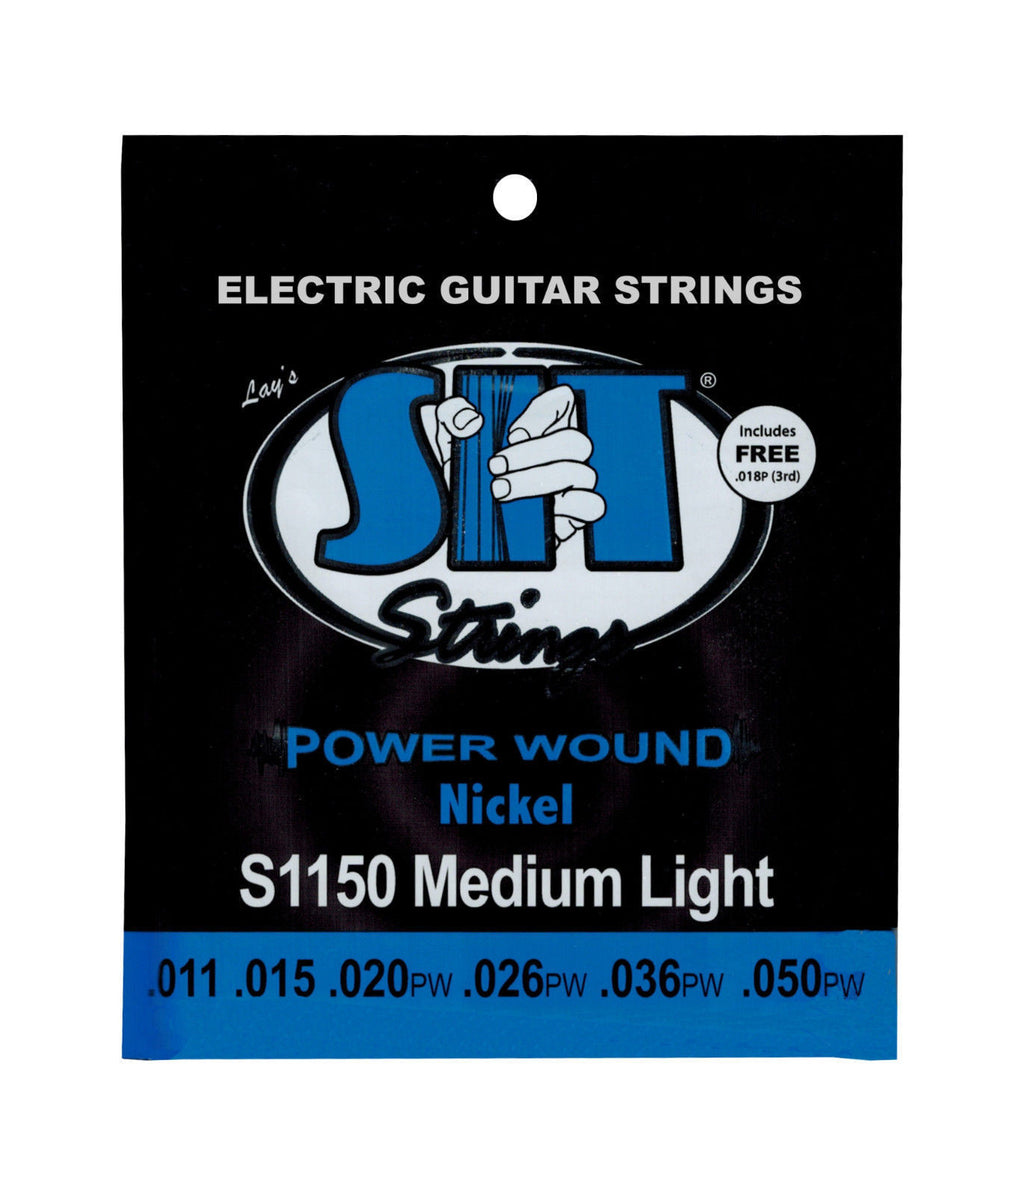 SIT Strings S1150 Medium Light Power Wound Nickel Electric Guitar Strings 12 Pack